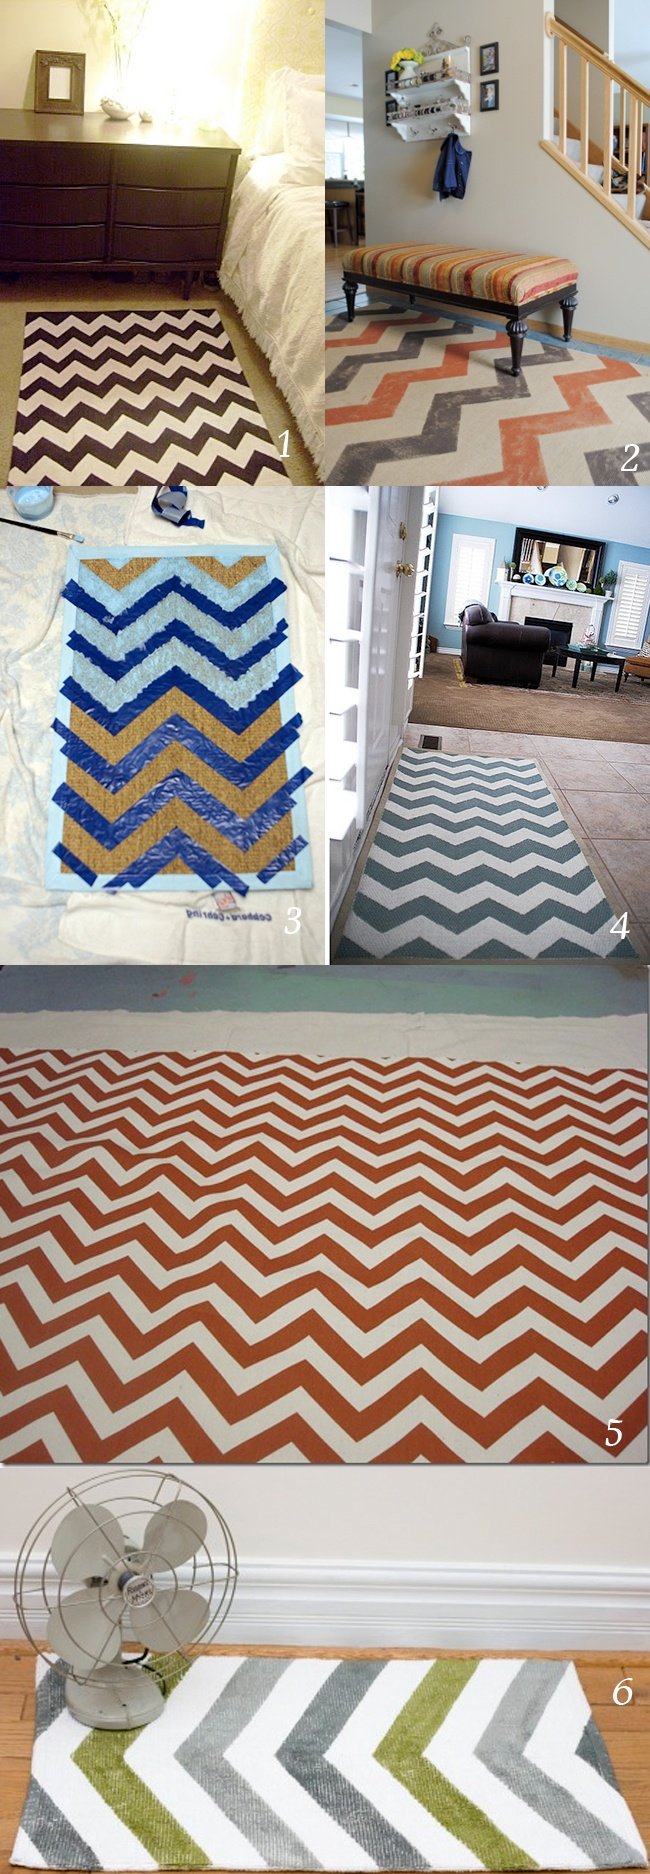 DIY rugs, in all shapes, sizes and colors!! Love chevron.